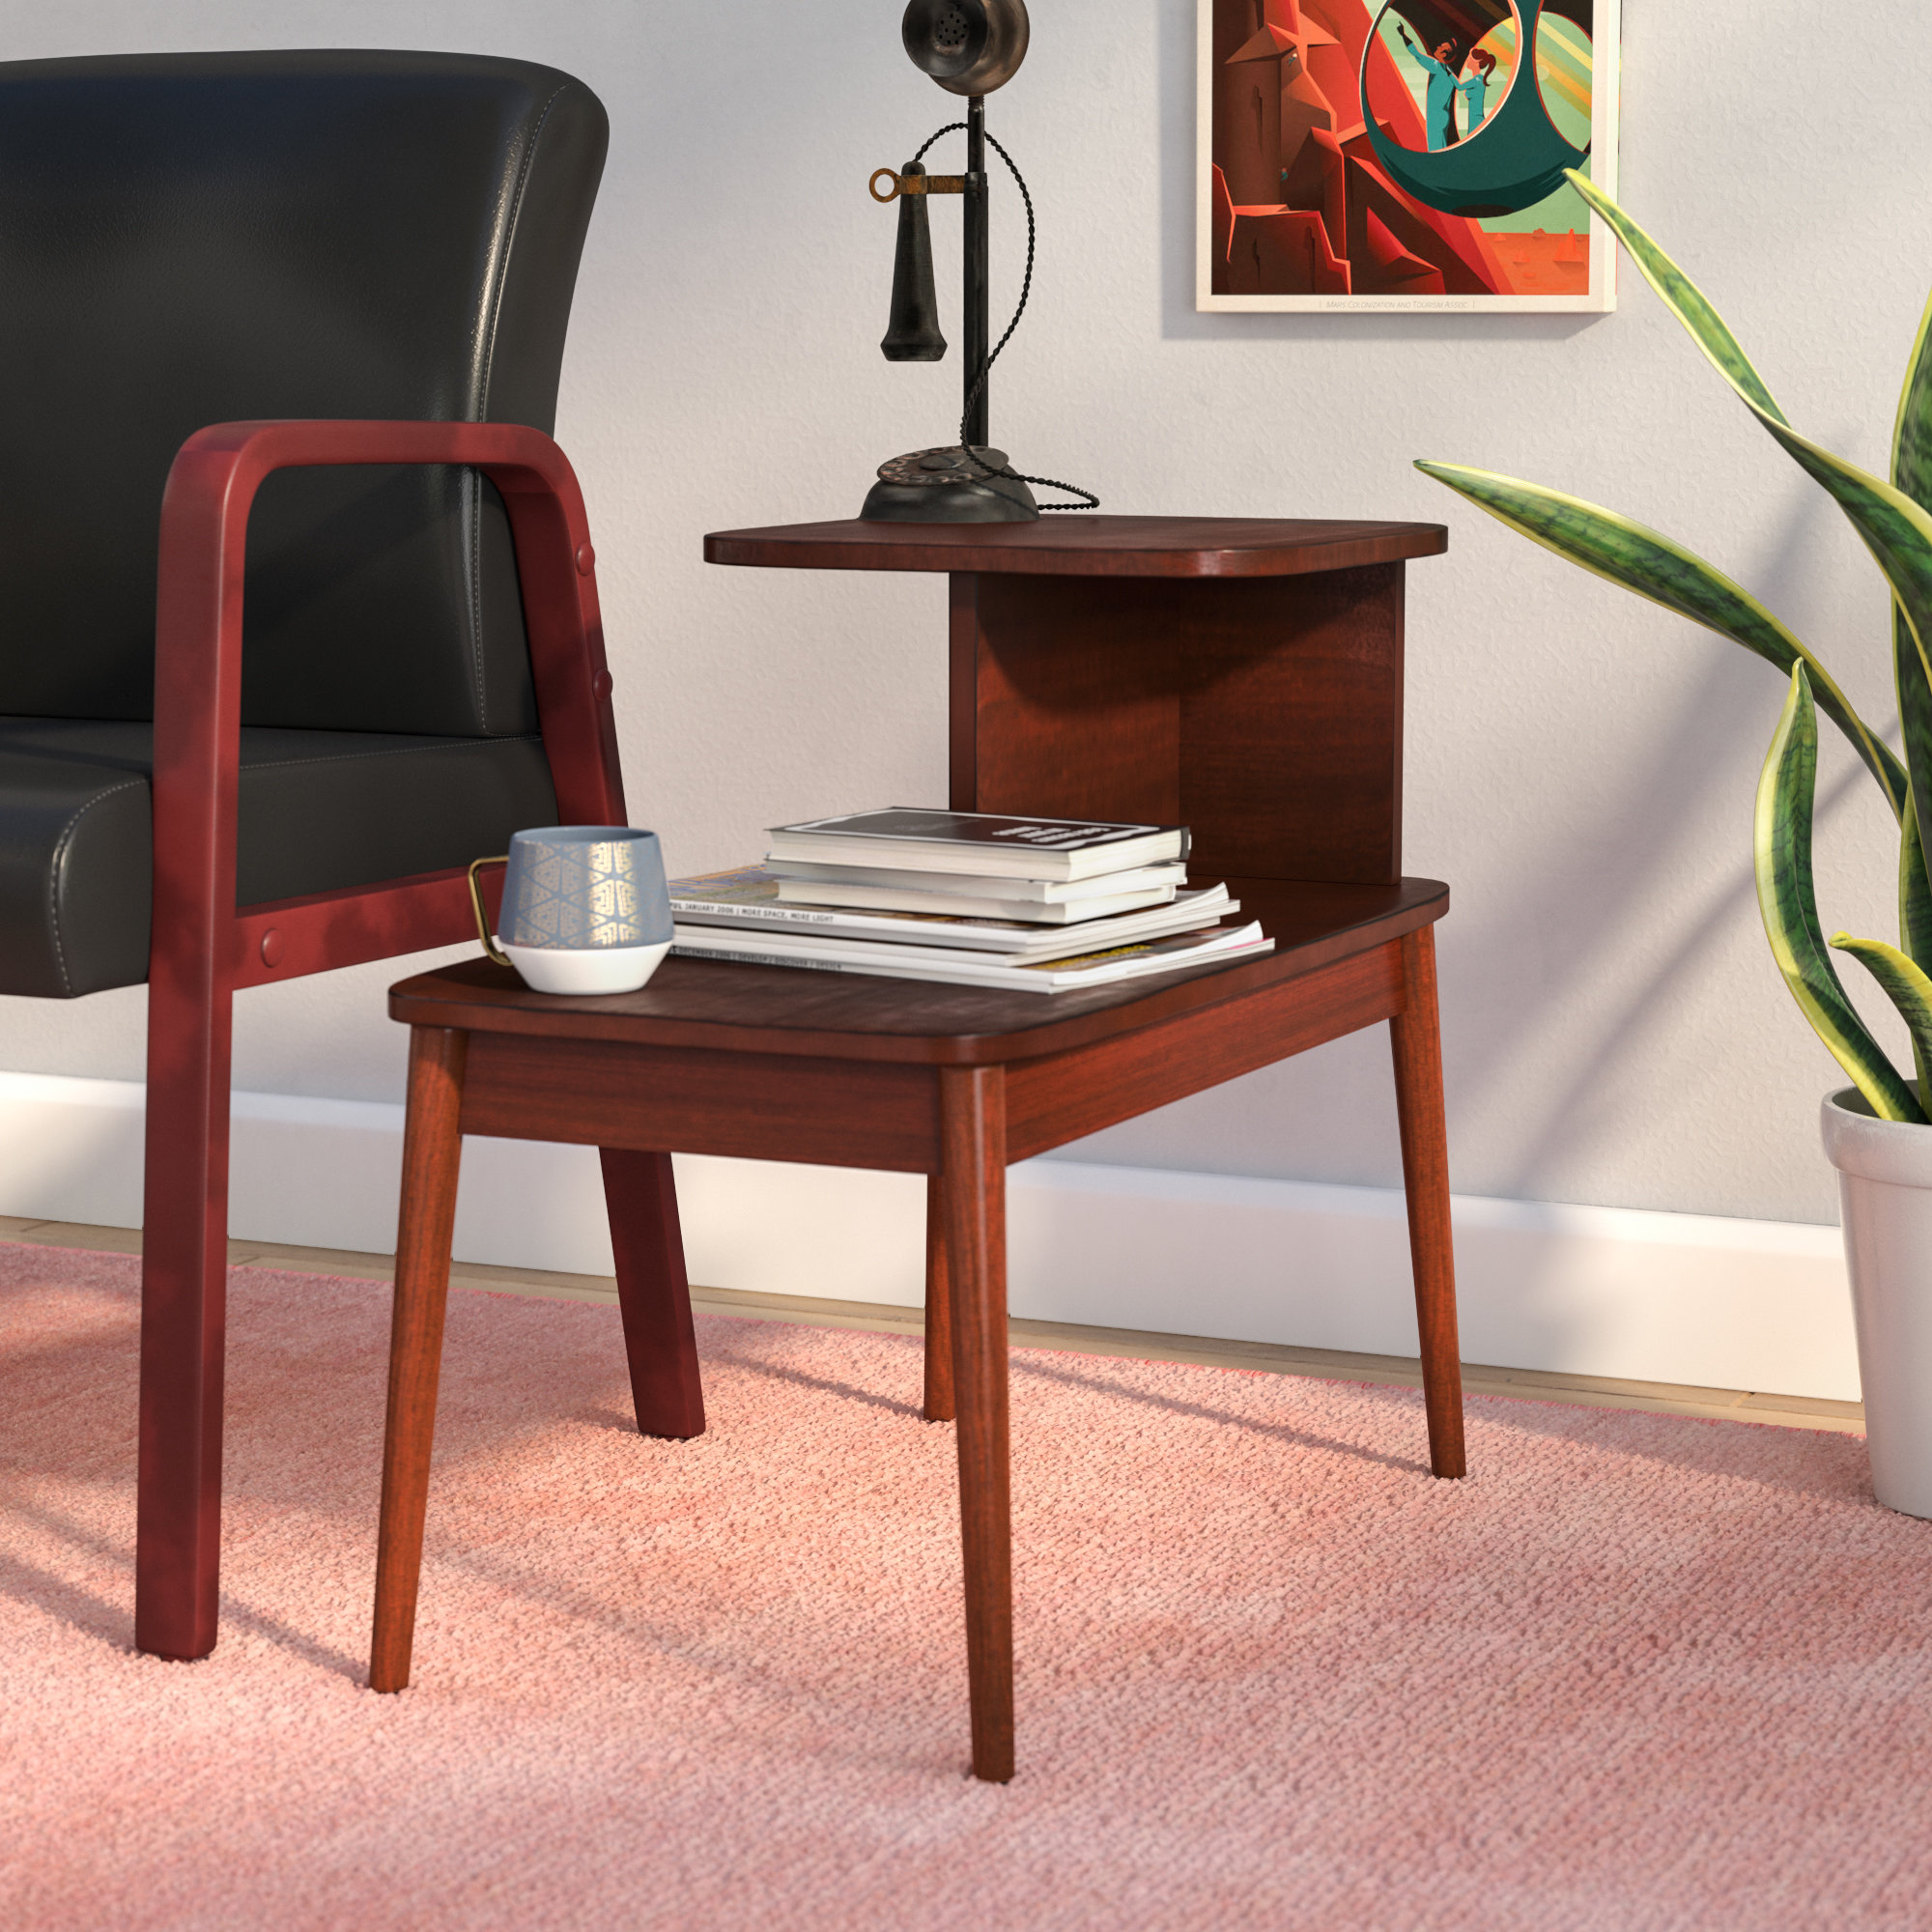 draper mid century end table darcey room essentials hairpin accent quickview seating for small spaces black side with drawers large dining and chairs round owings target coffee